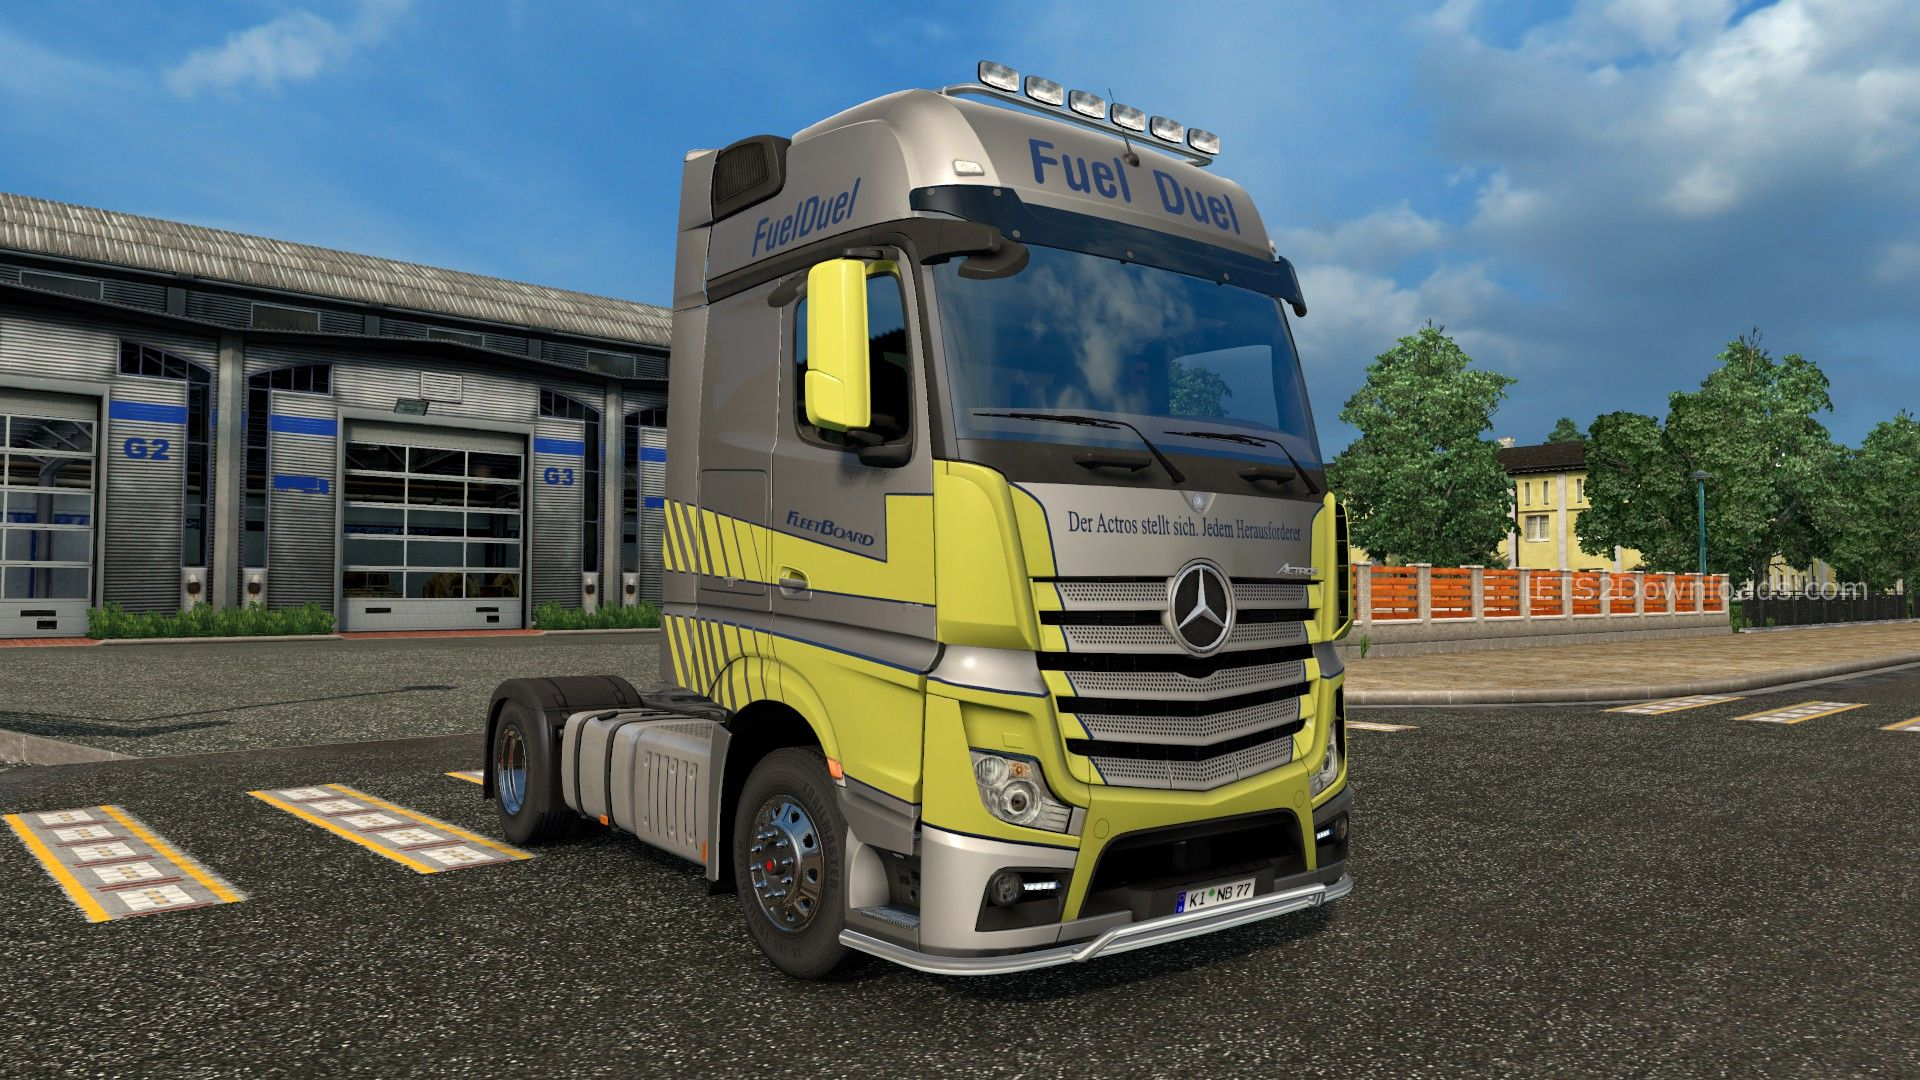 fuel-duel-metallic-skin-for-actros-mpiv